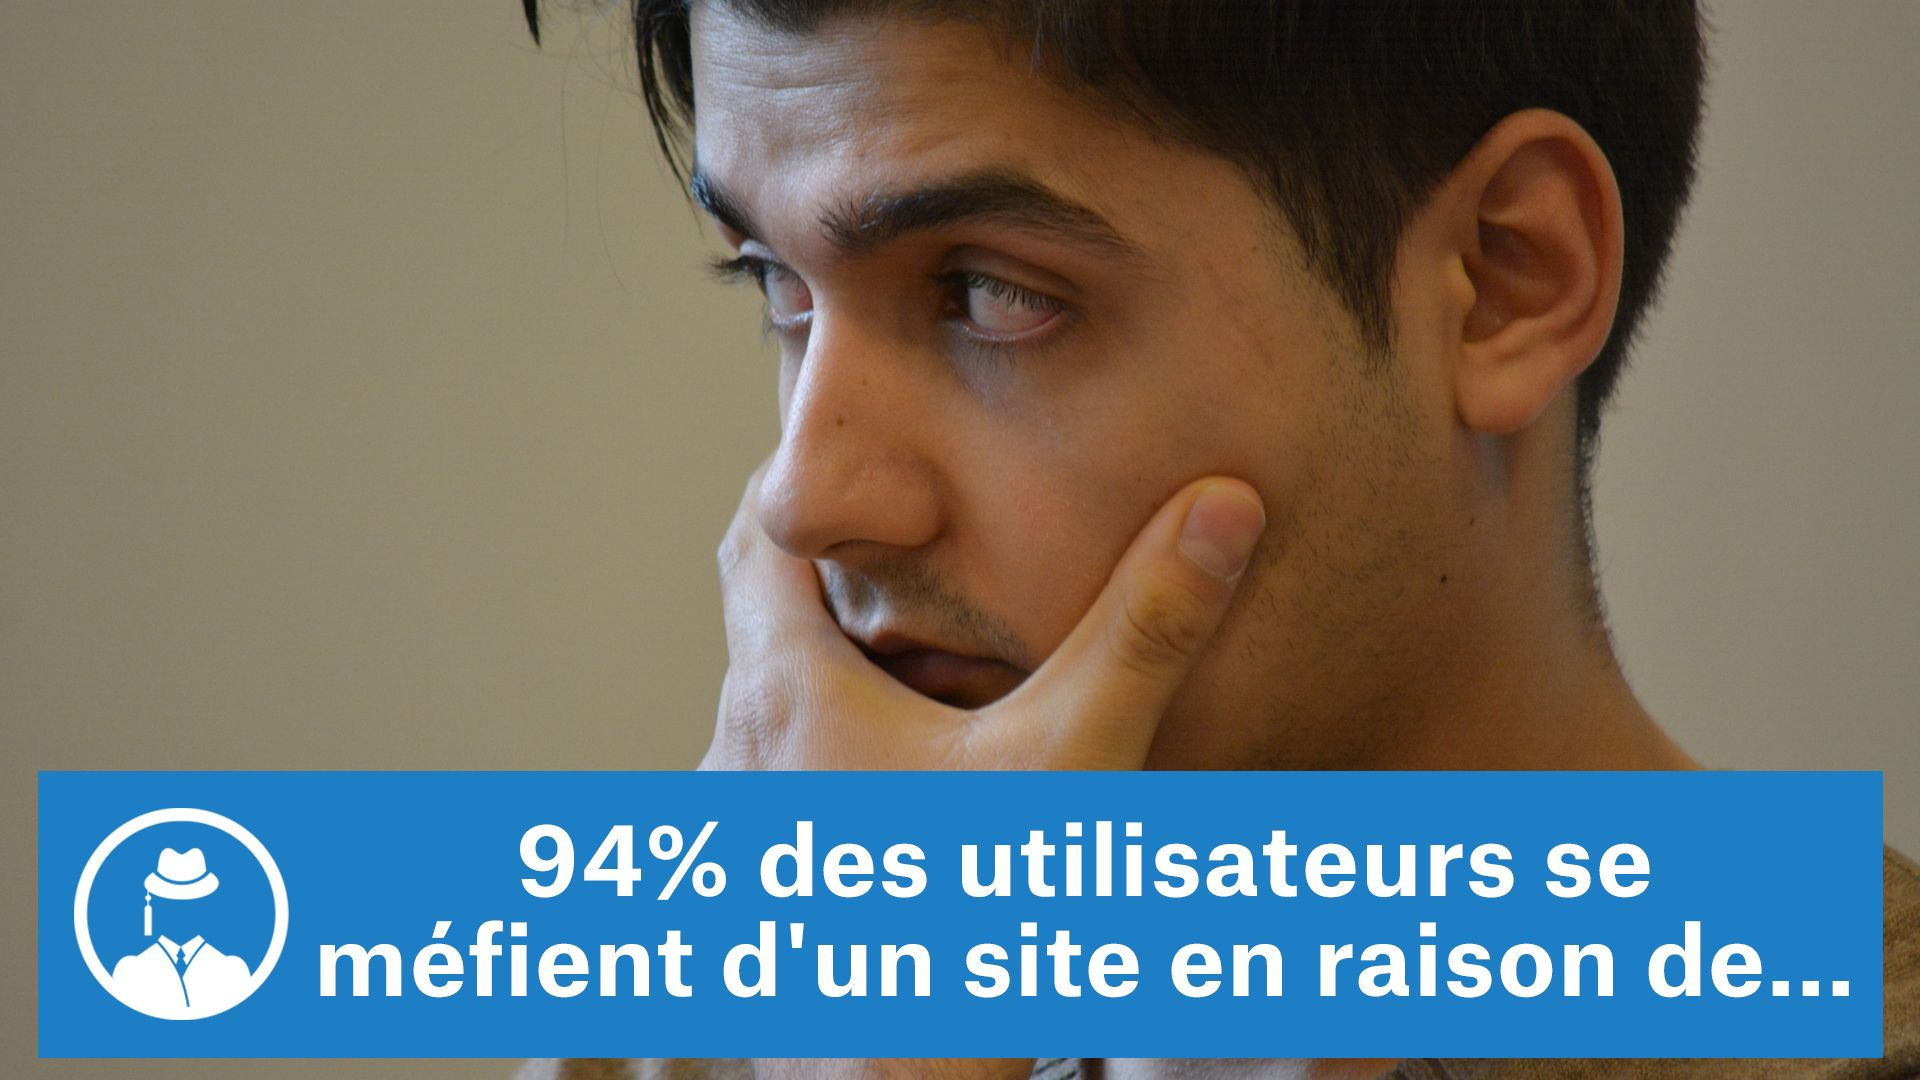 94% des utilisateurs se méfient d'un site en raison de... #GrowthHacking #WebMarketing #FormationGrowthHacking #CentreDeFormationFrance #TunnelAARRR #AARRR #SocialMedia #CommunityManagement #SEO #MarketingDigital #SiteWeb